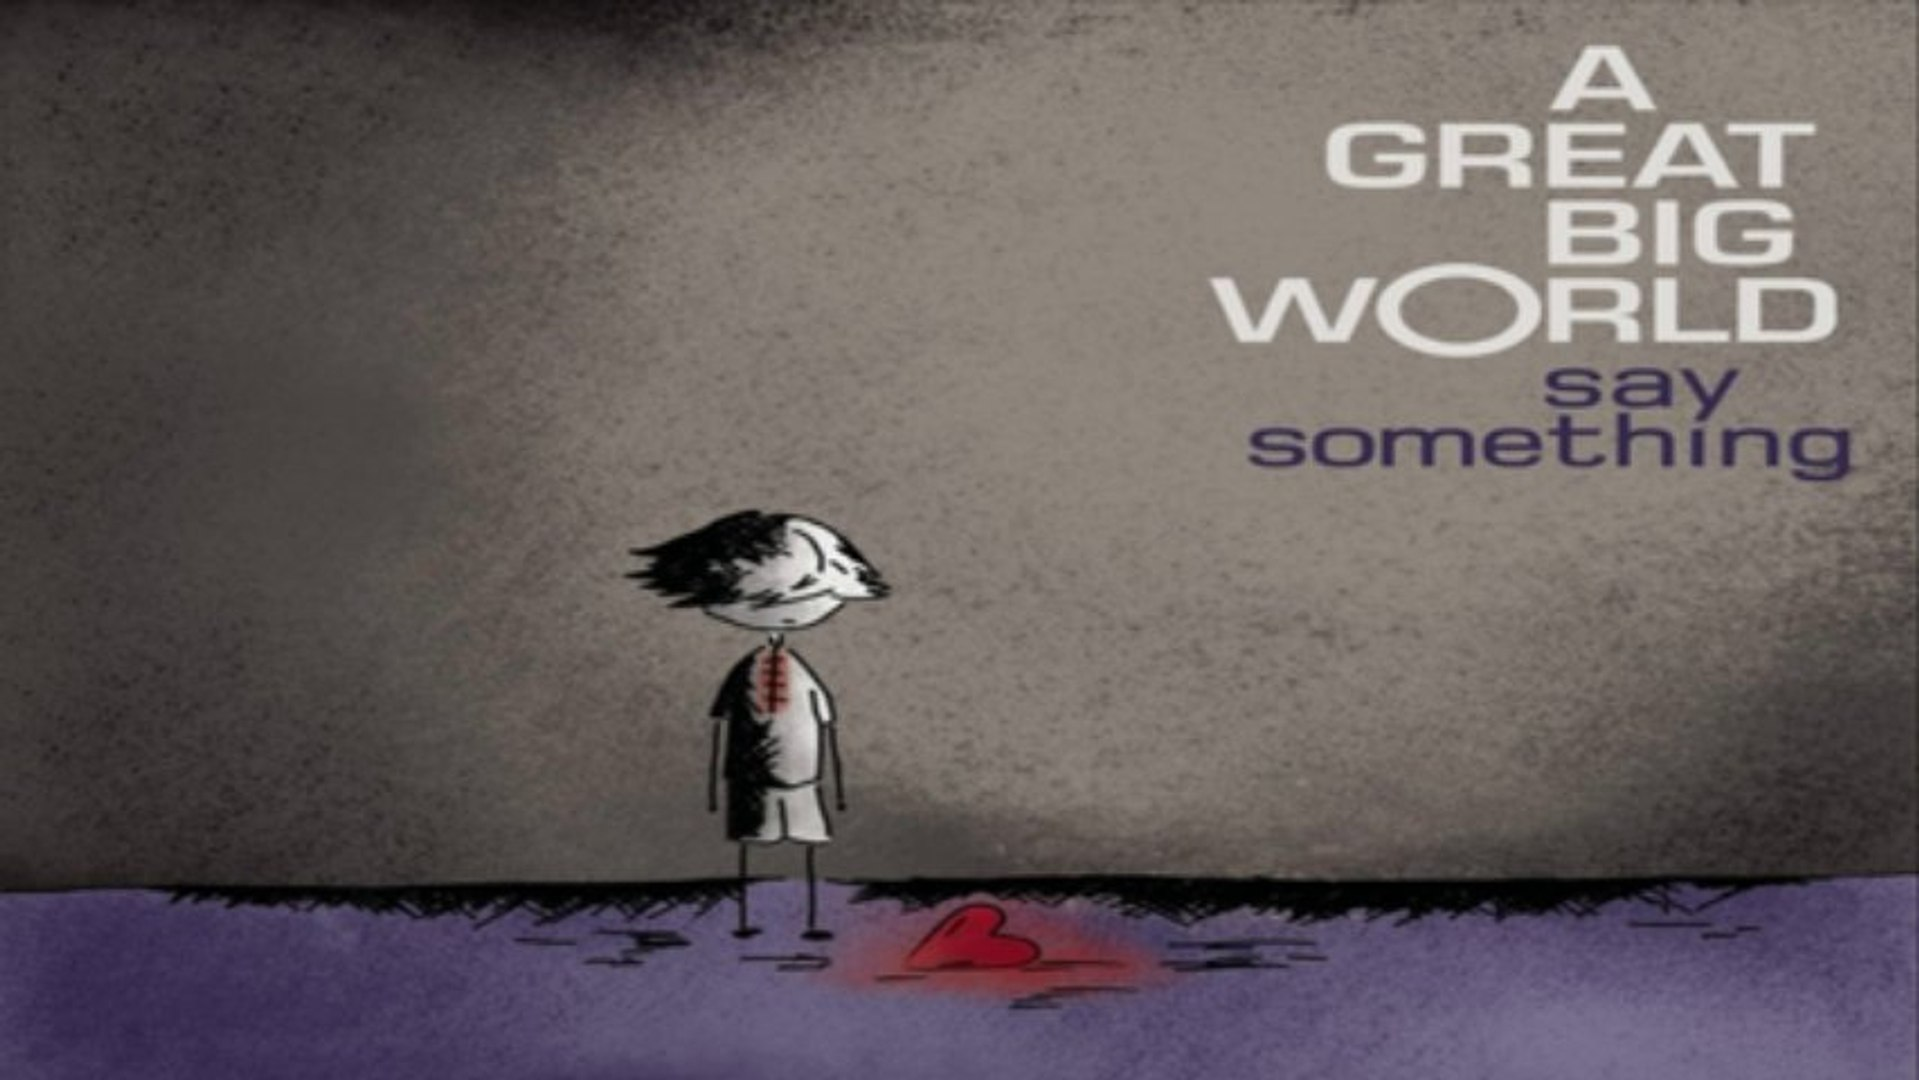 [ DOWNLOAD MP3 ] A Great Big World - Say Something [ iTunesRip ]